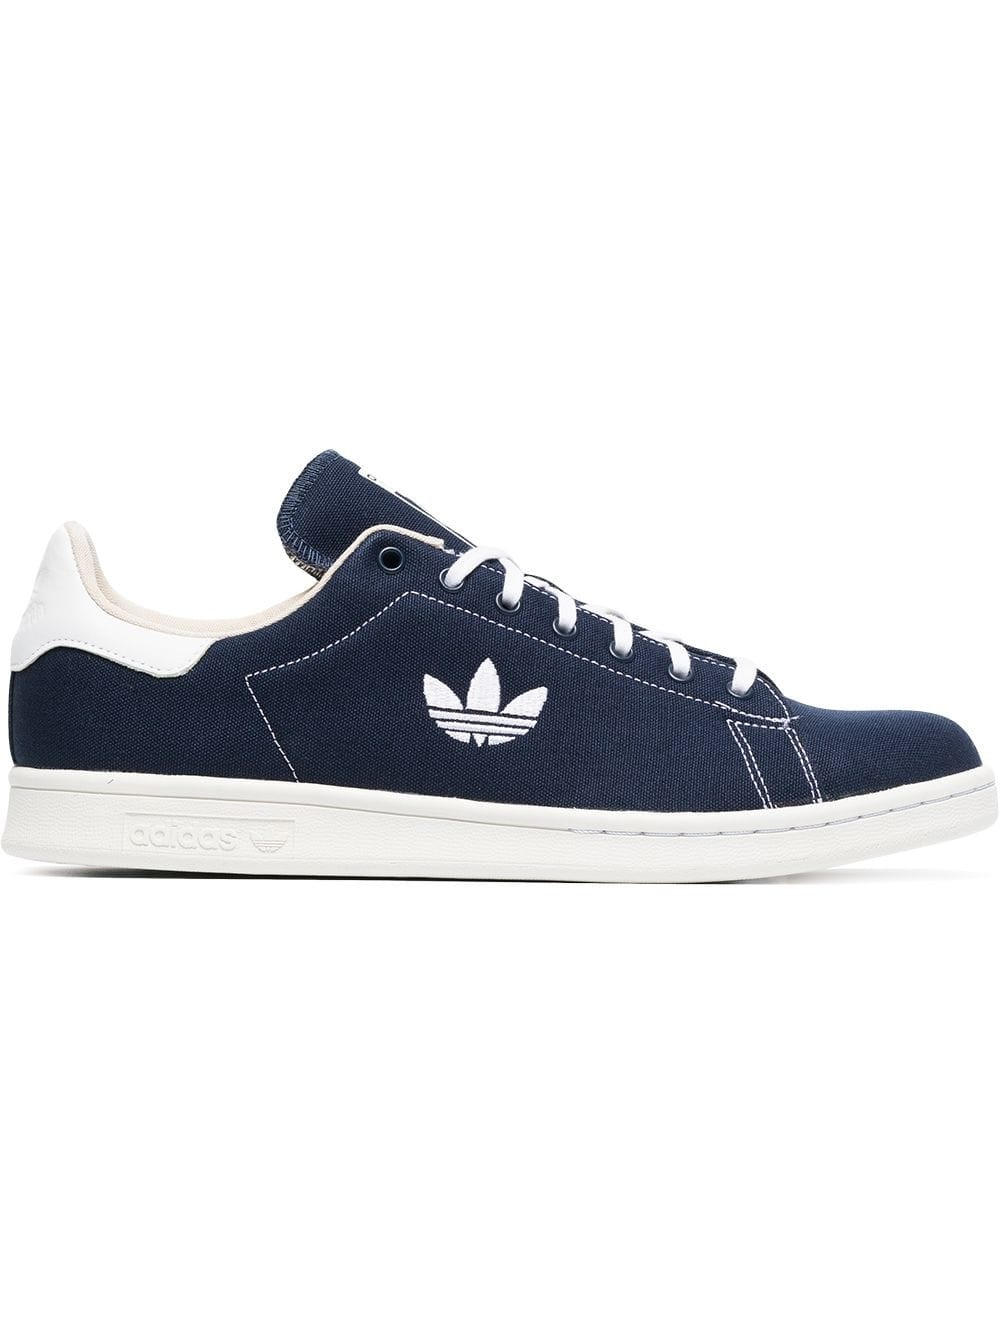 Adidas Stan Smith 'Collegiate Navy' AQ0836